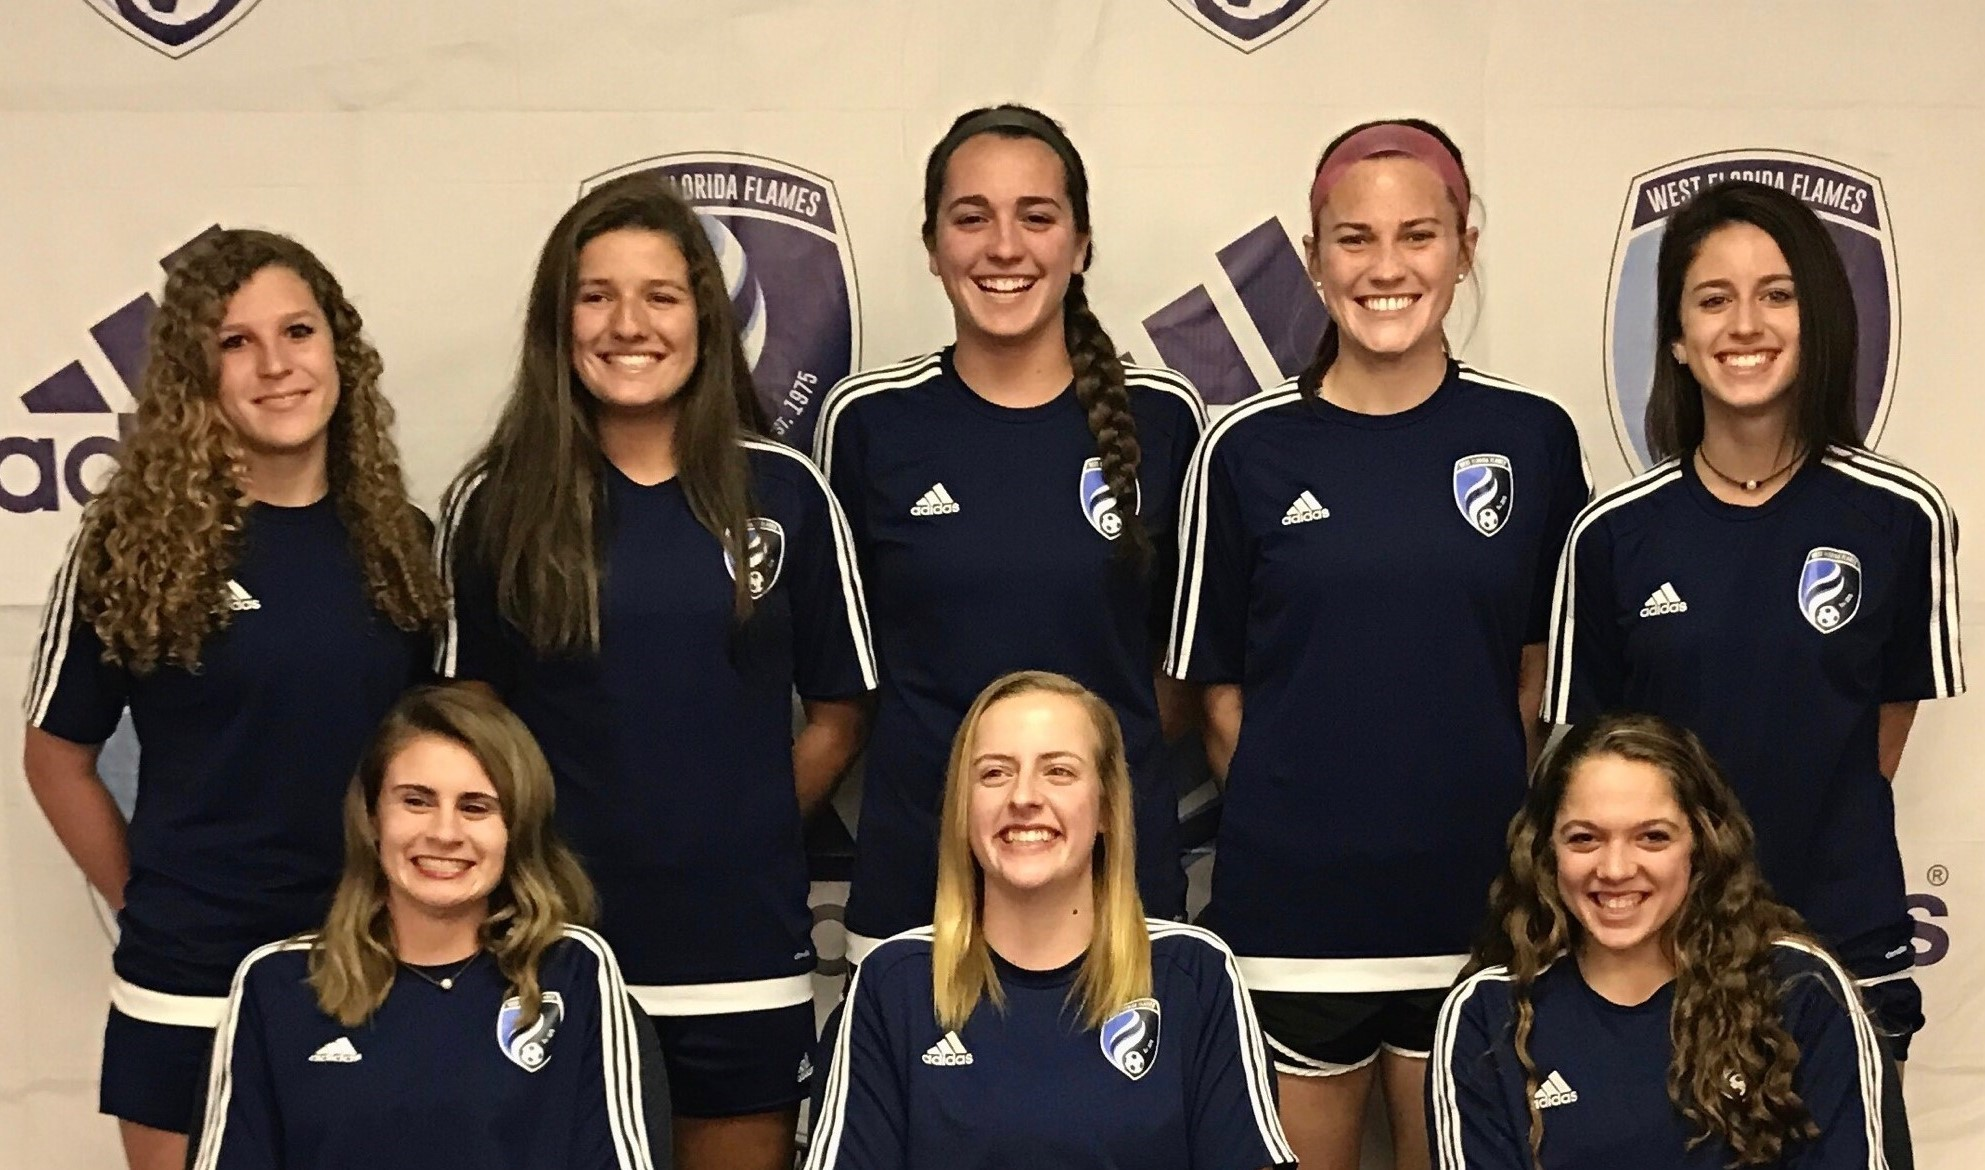 New Era in Girls Youth Soccer at West Florida Flames